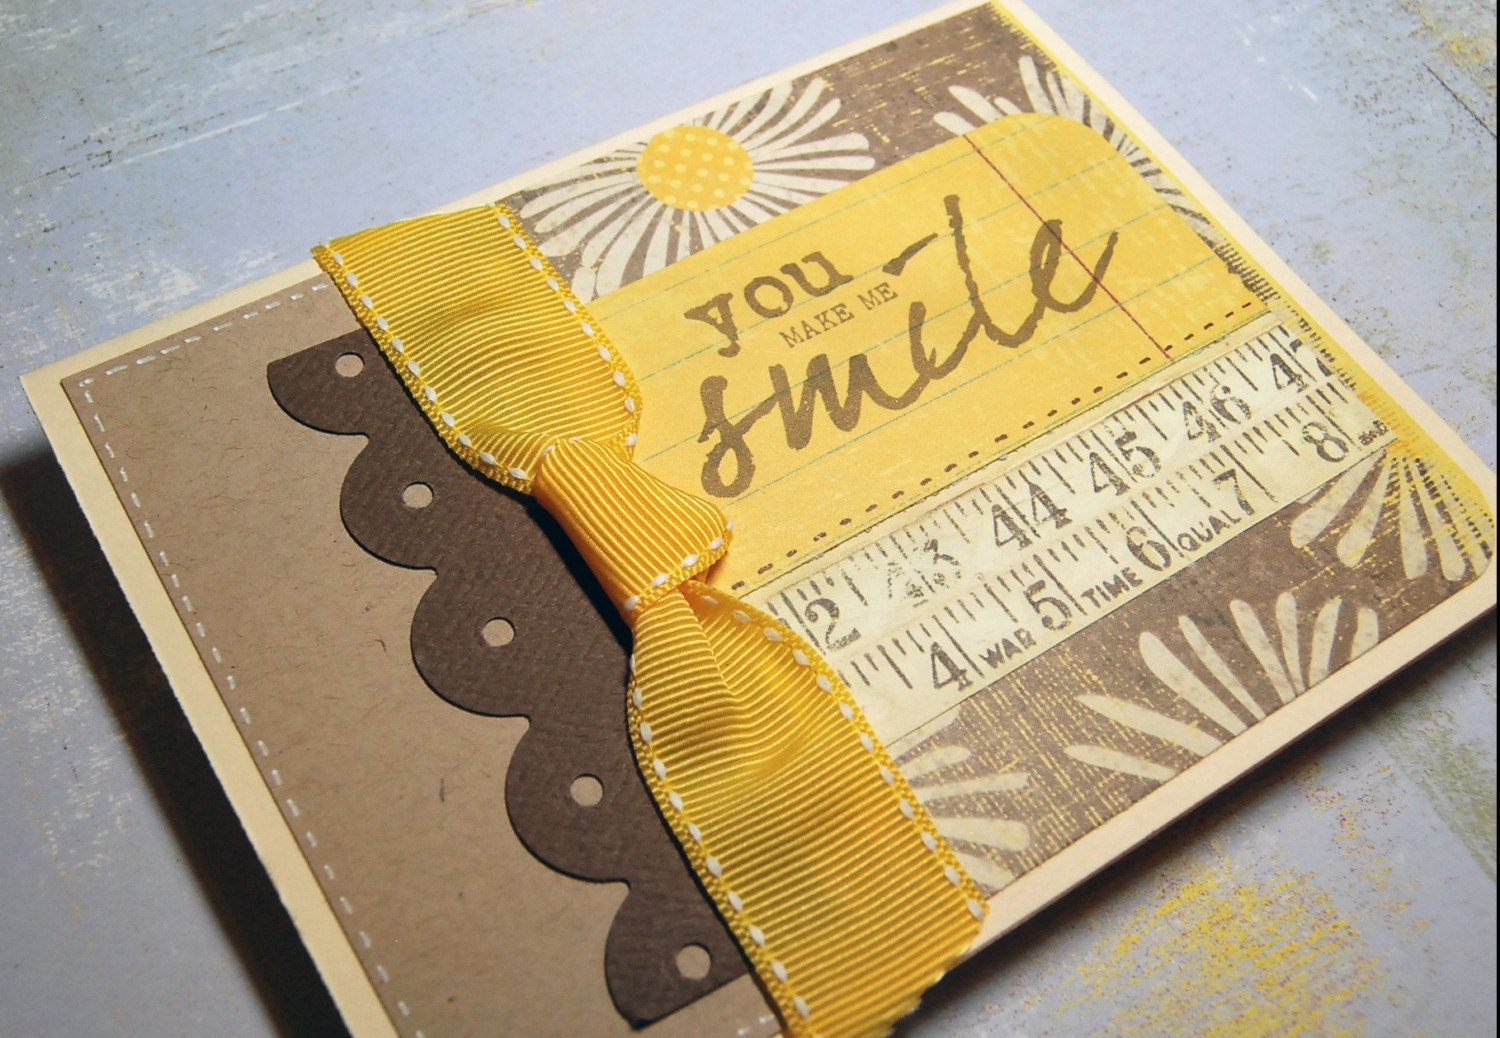 All Occasion Smile Card - Yellow and Brown Lace Ribbon Daisy handmade by RightBrainy